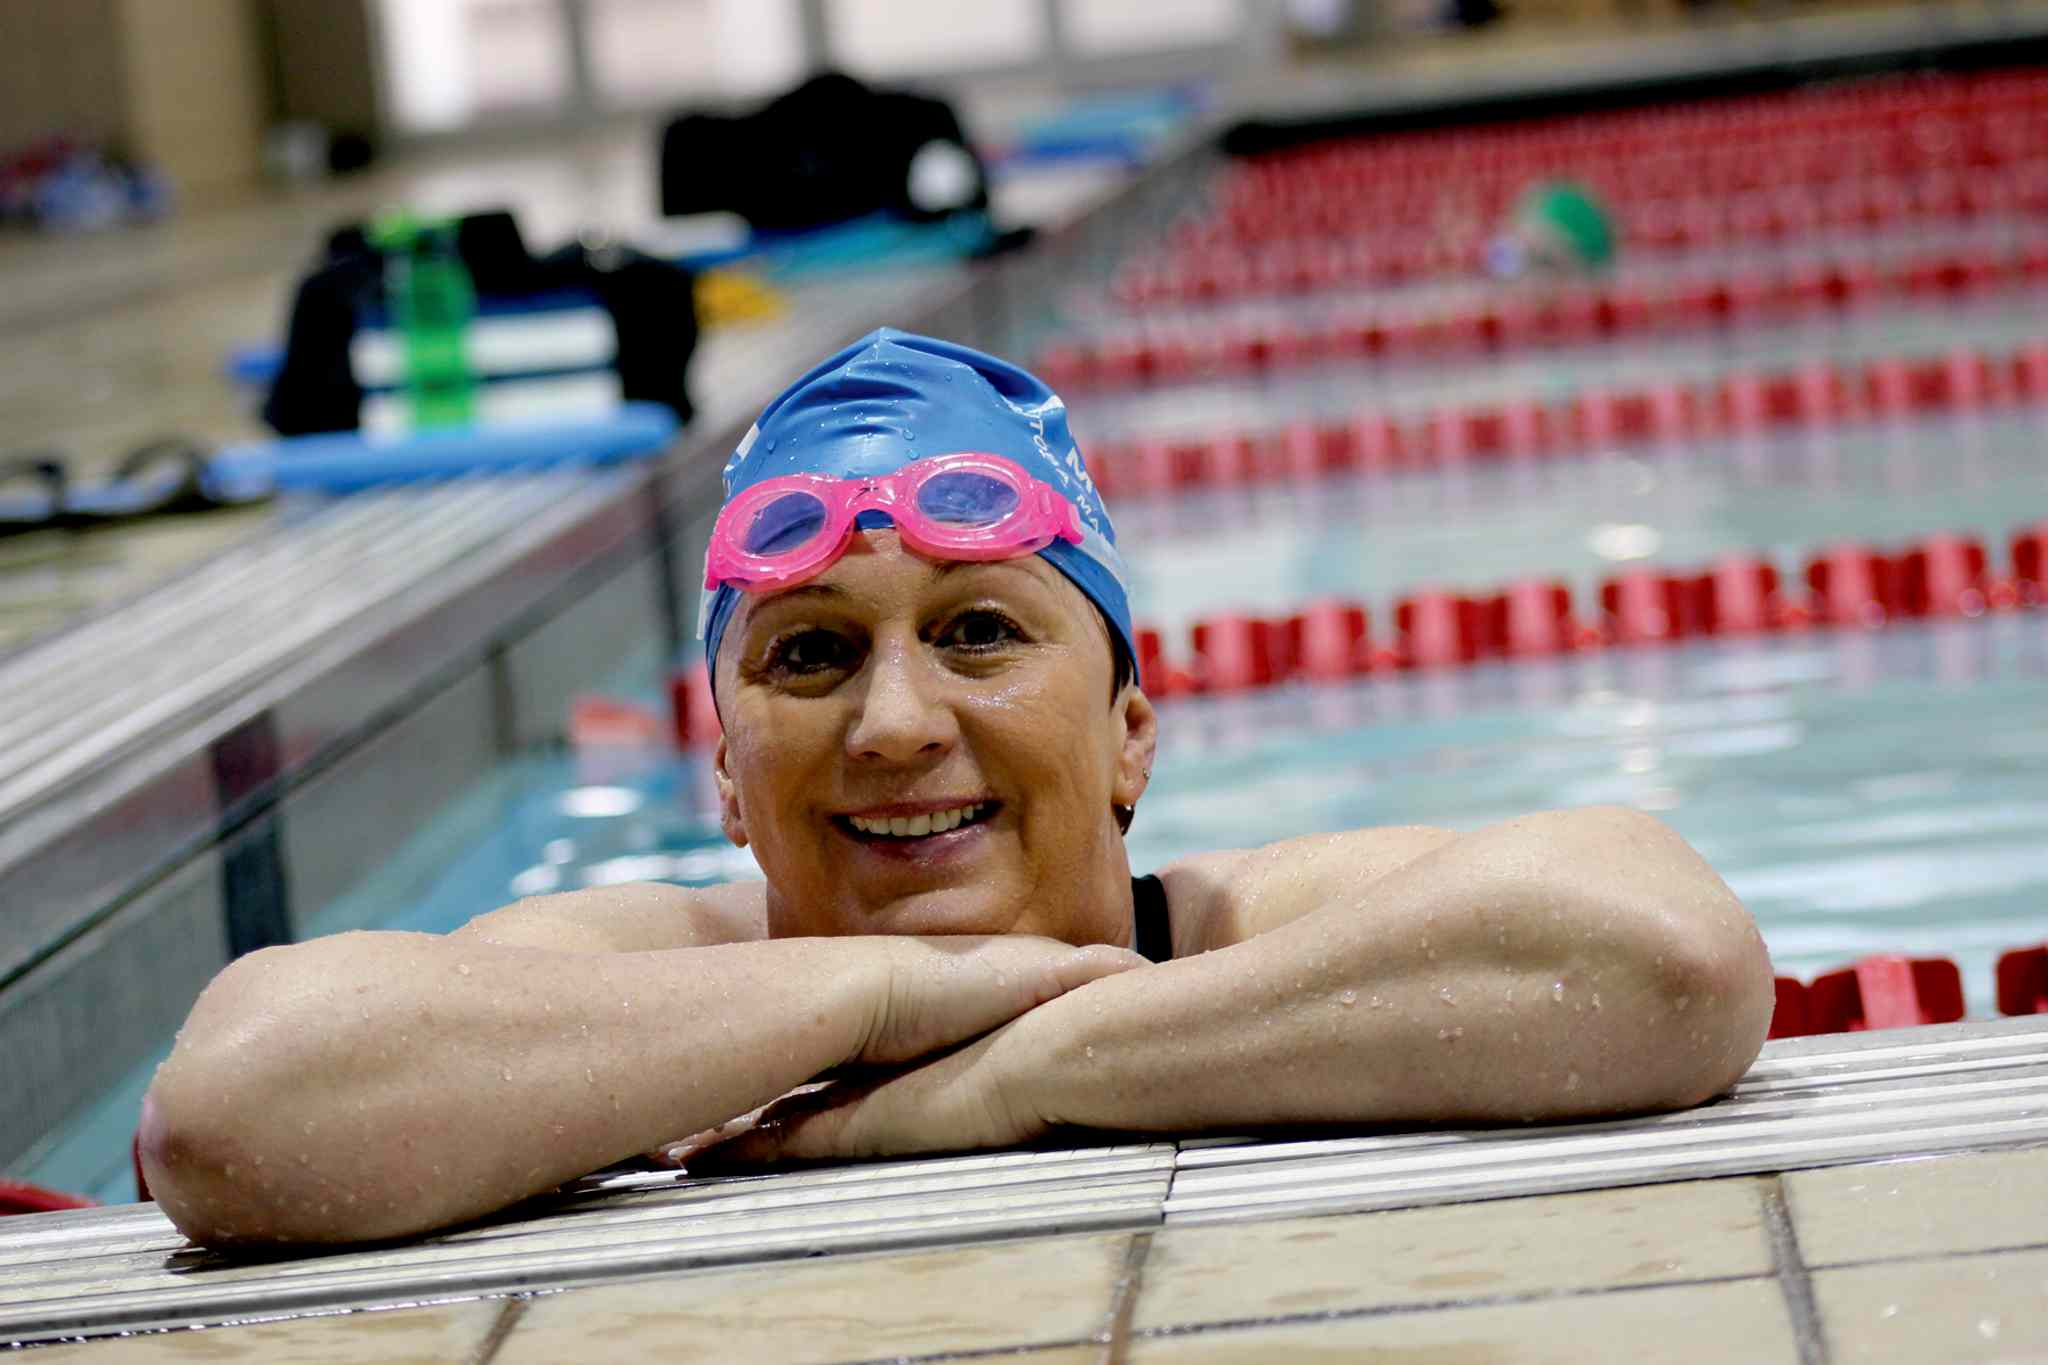 Leah Barnlund, 56, of Fort Garry, will be competing in the 15th annual FINA World Masters Championships this July in Montreal, Que.